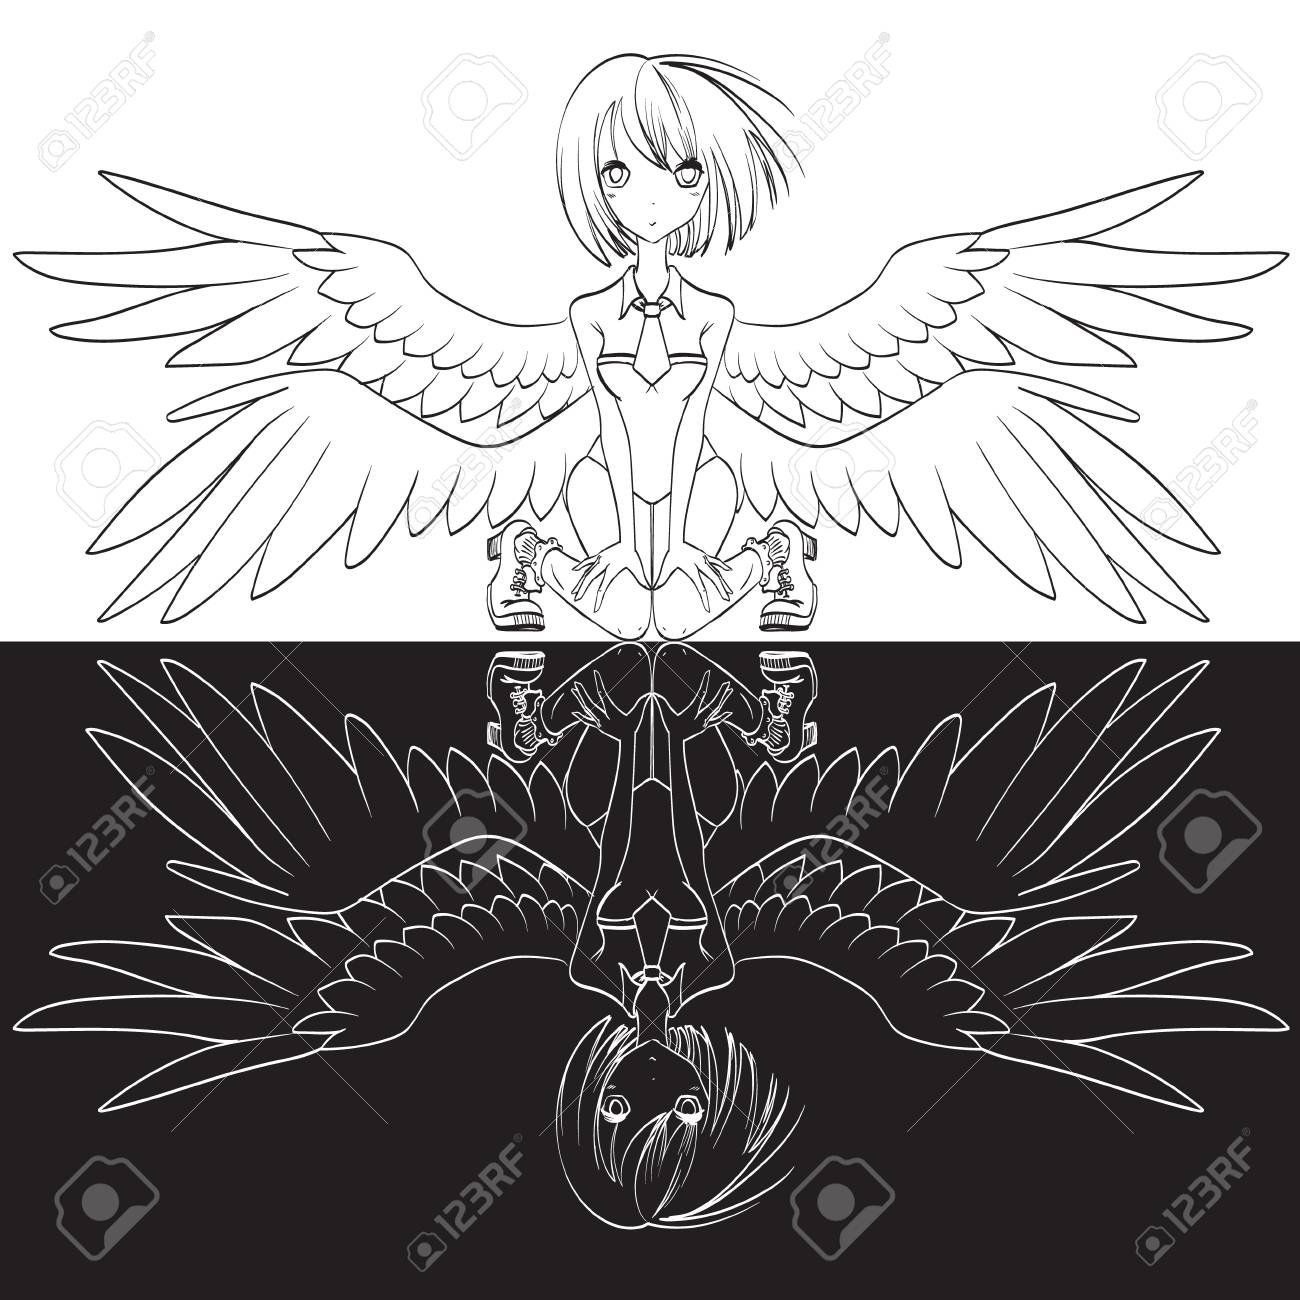 Anime girl with wings angel illustration vector stock illustration 95751605